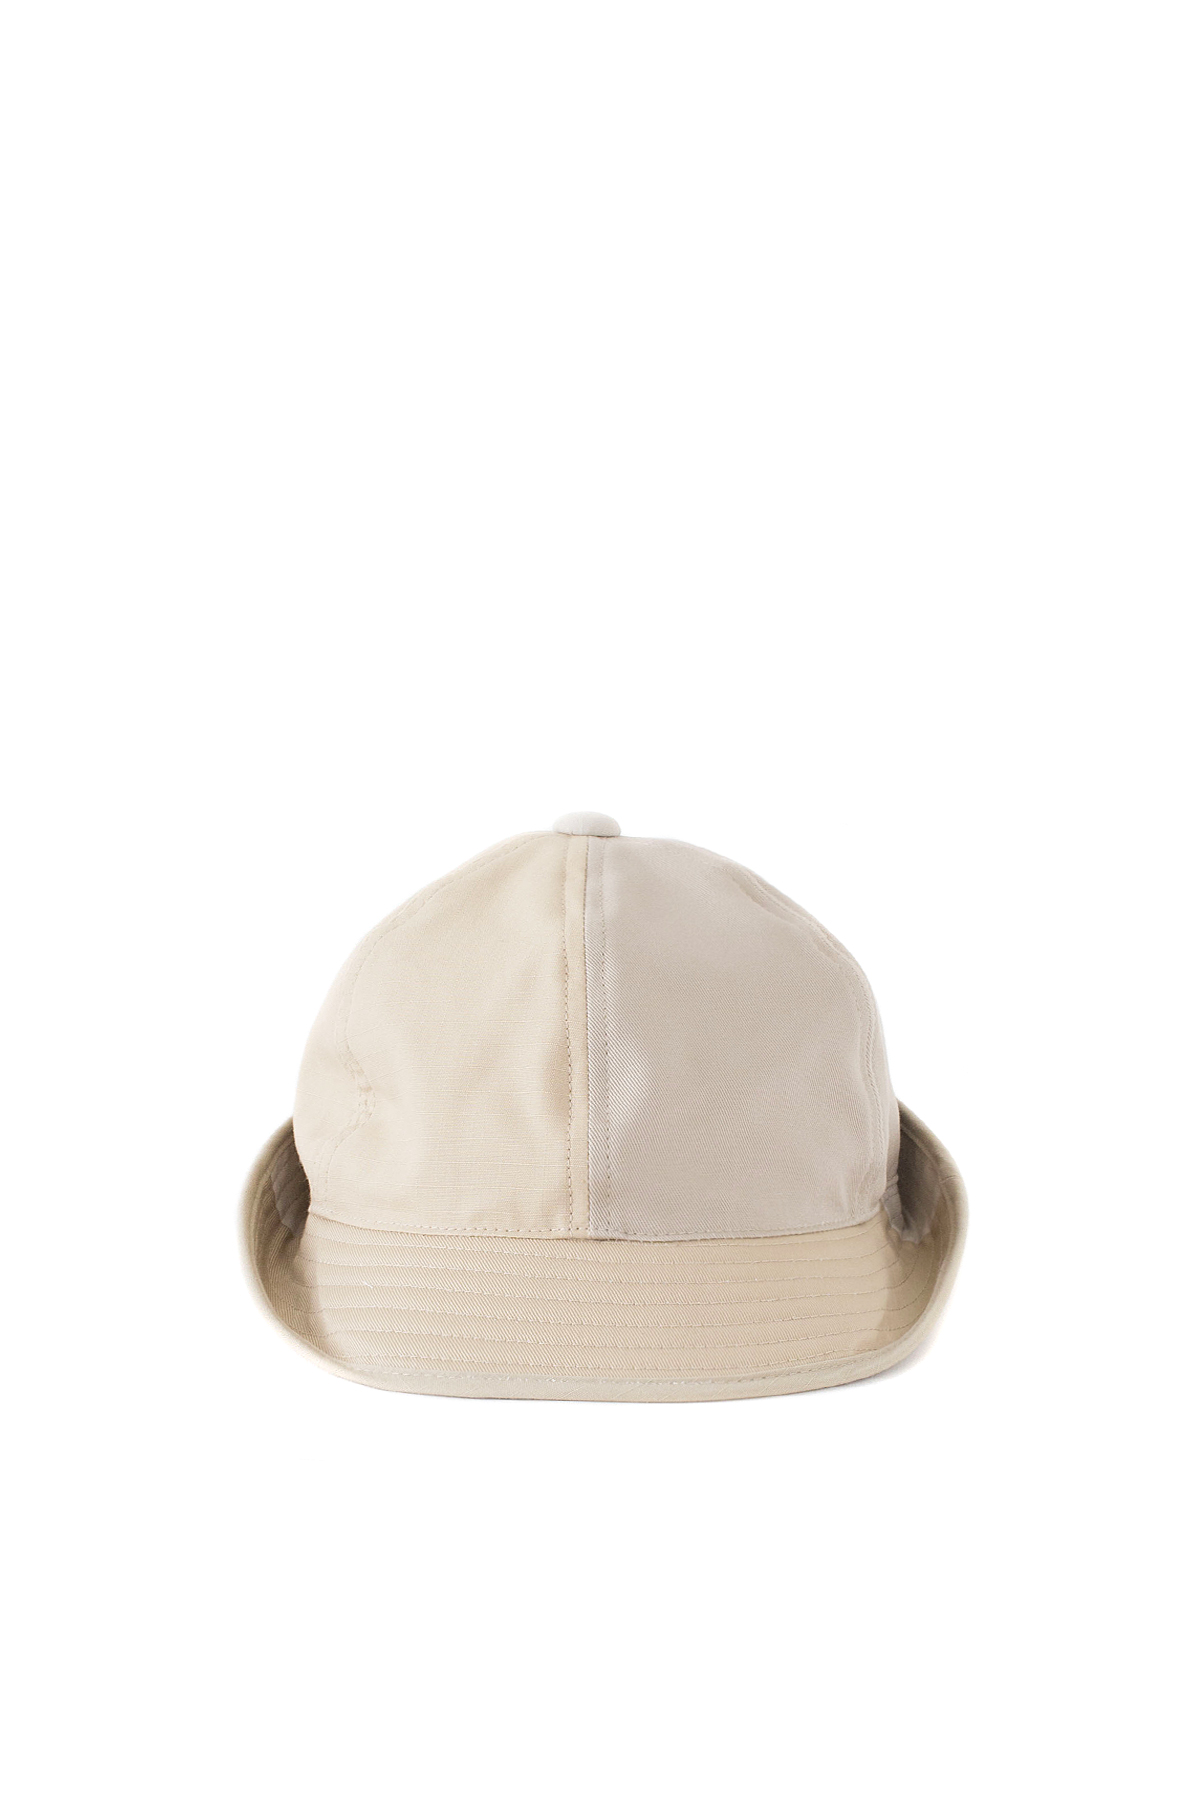 Infielder Design : Crazy Hunt Cap (Beige)